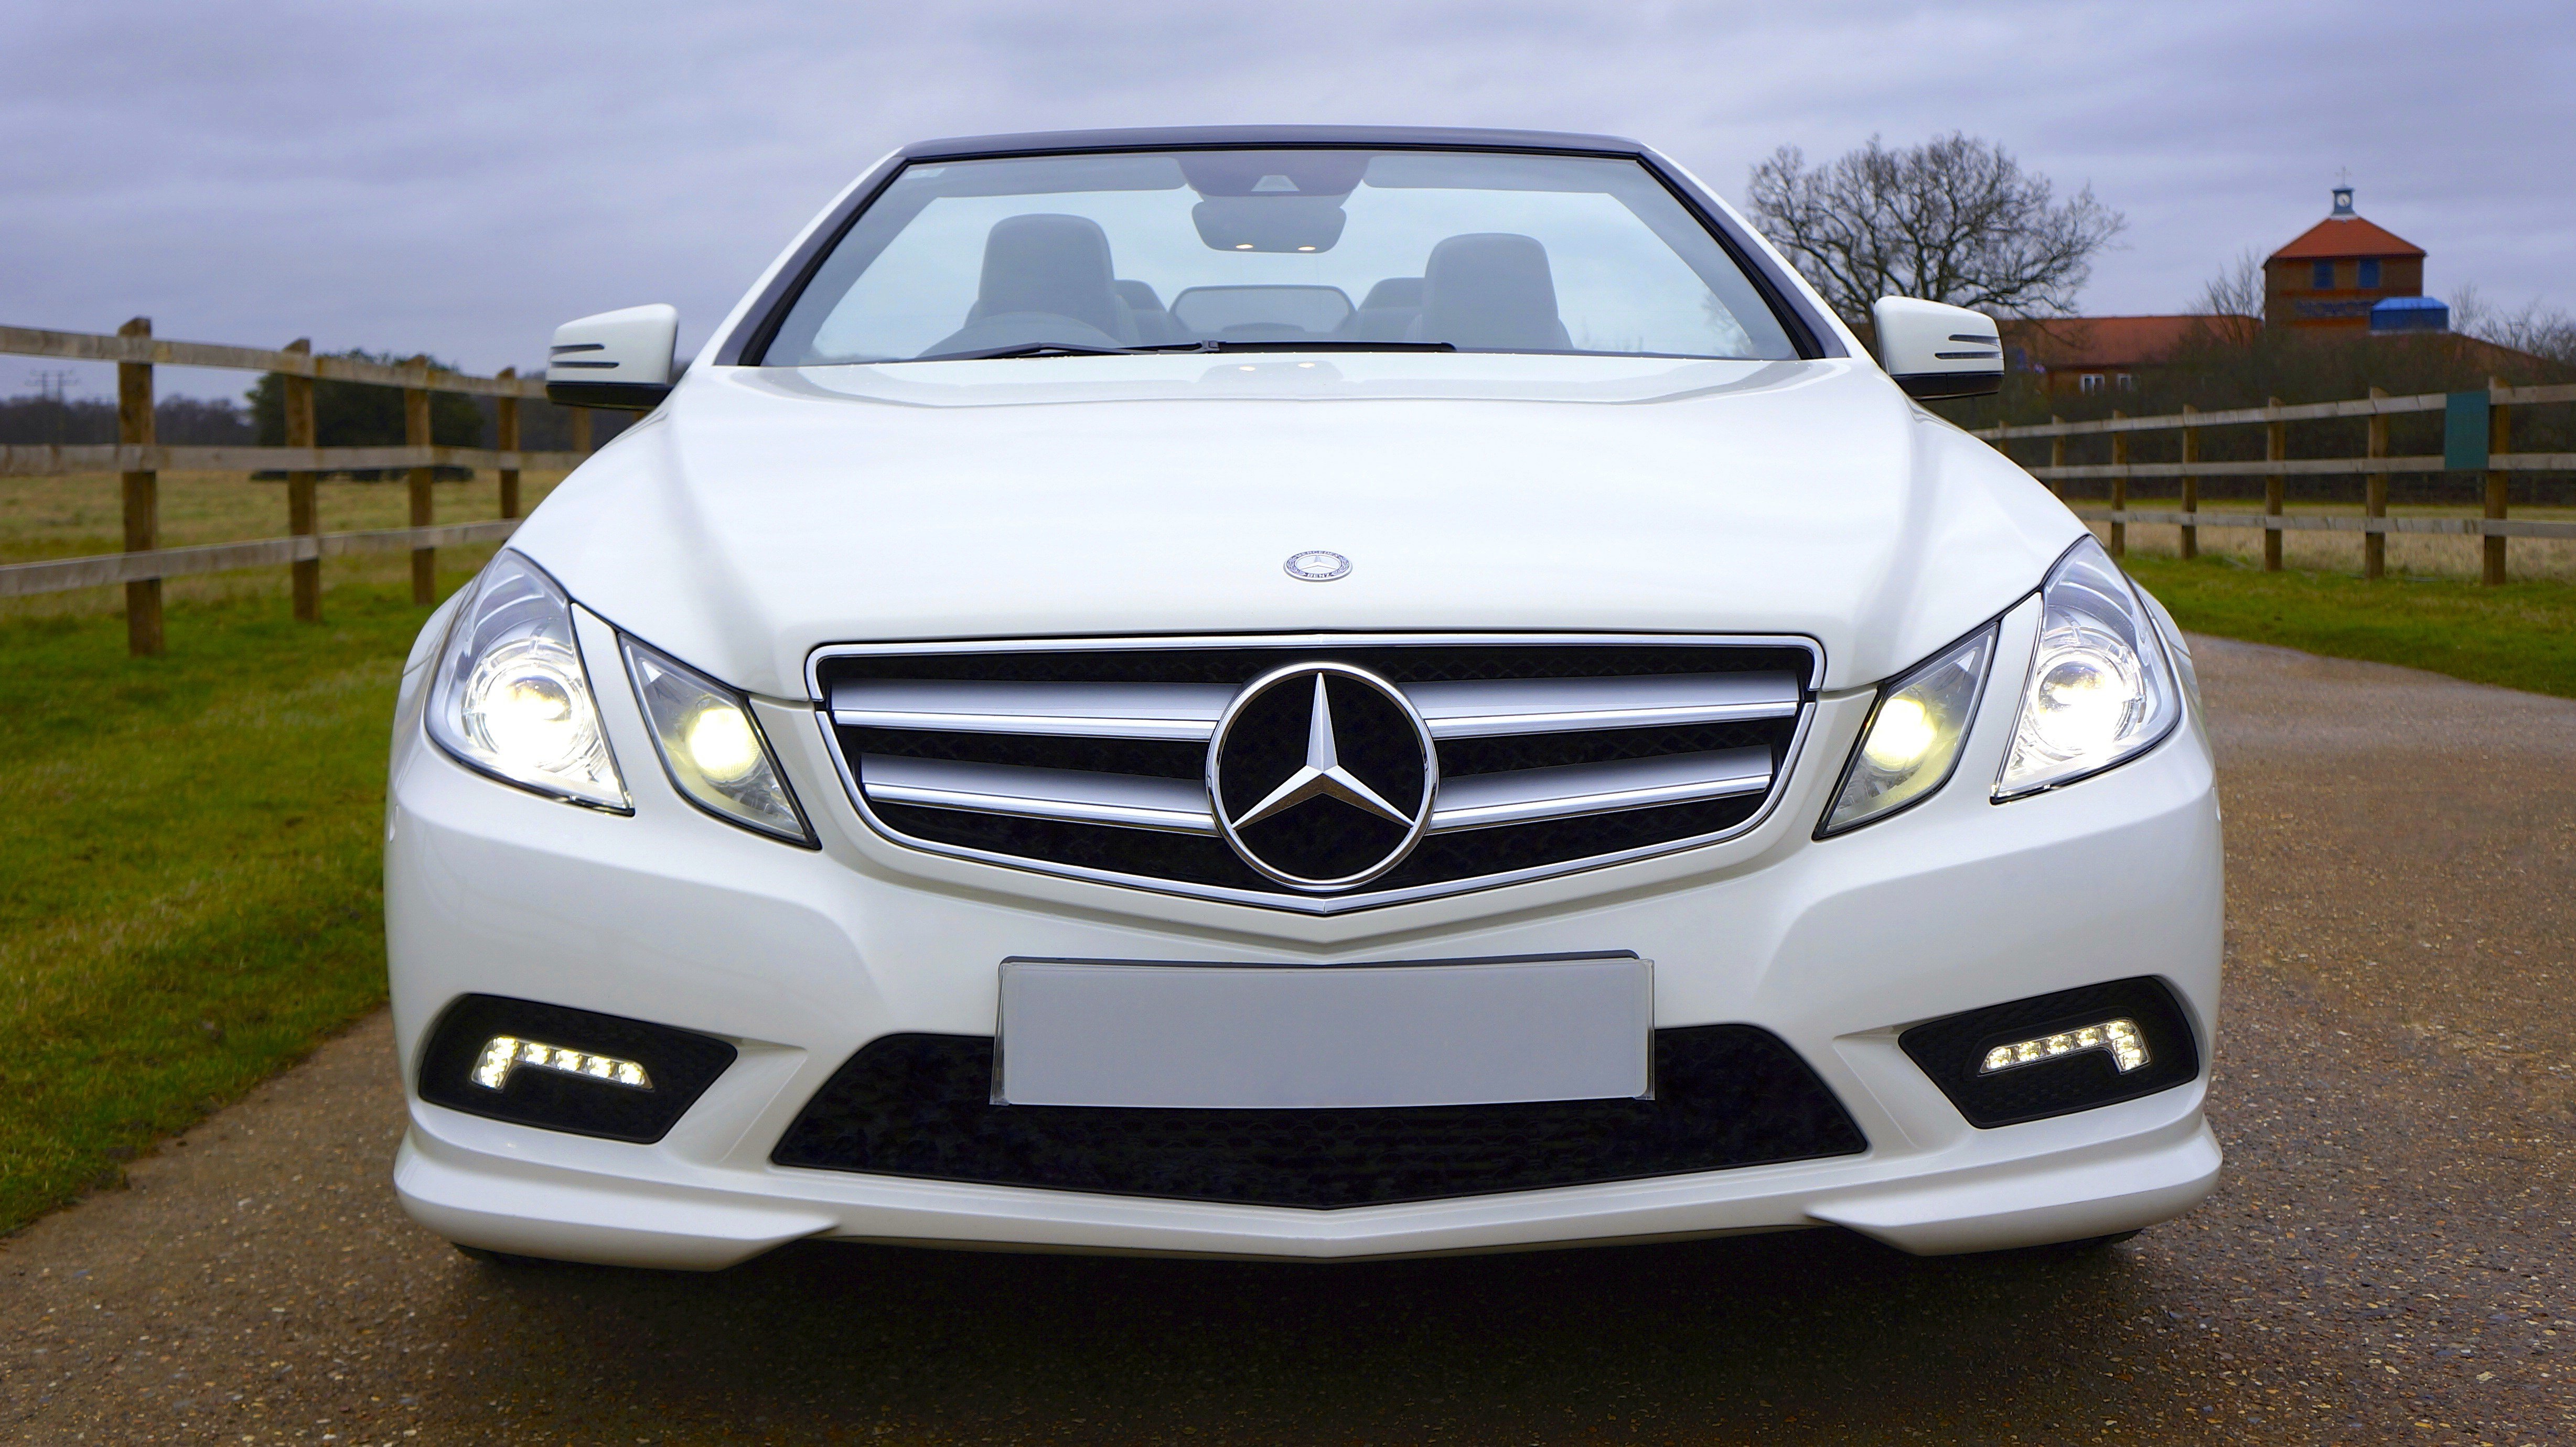 Latest White Mercedes Benz Car On White Snow Covered Ground At Free Download